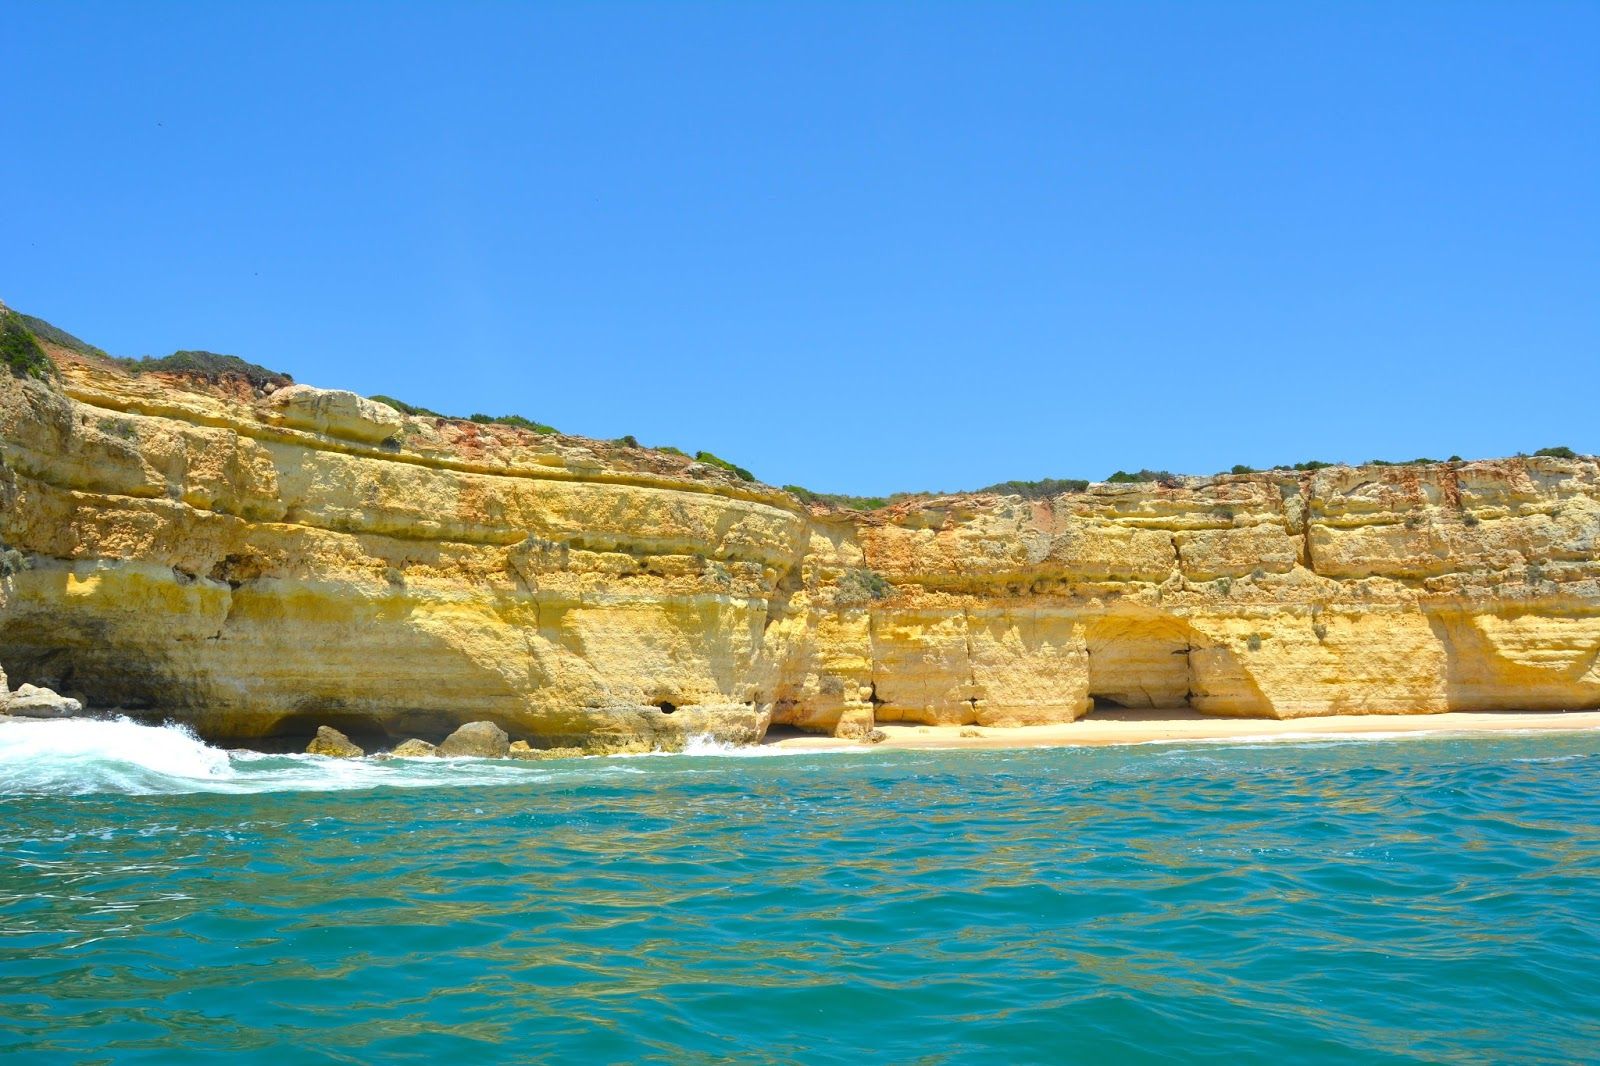 In this photo, you will see golden cliffs and turquoise waters. It was taken in the region of Algarve in Portugal known for its gorgeous coastline.